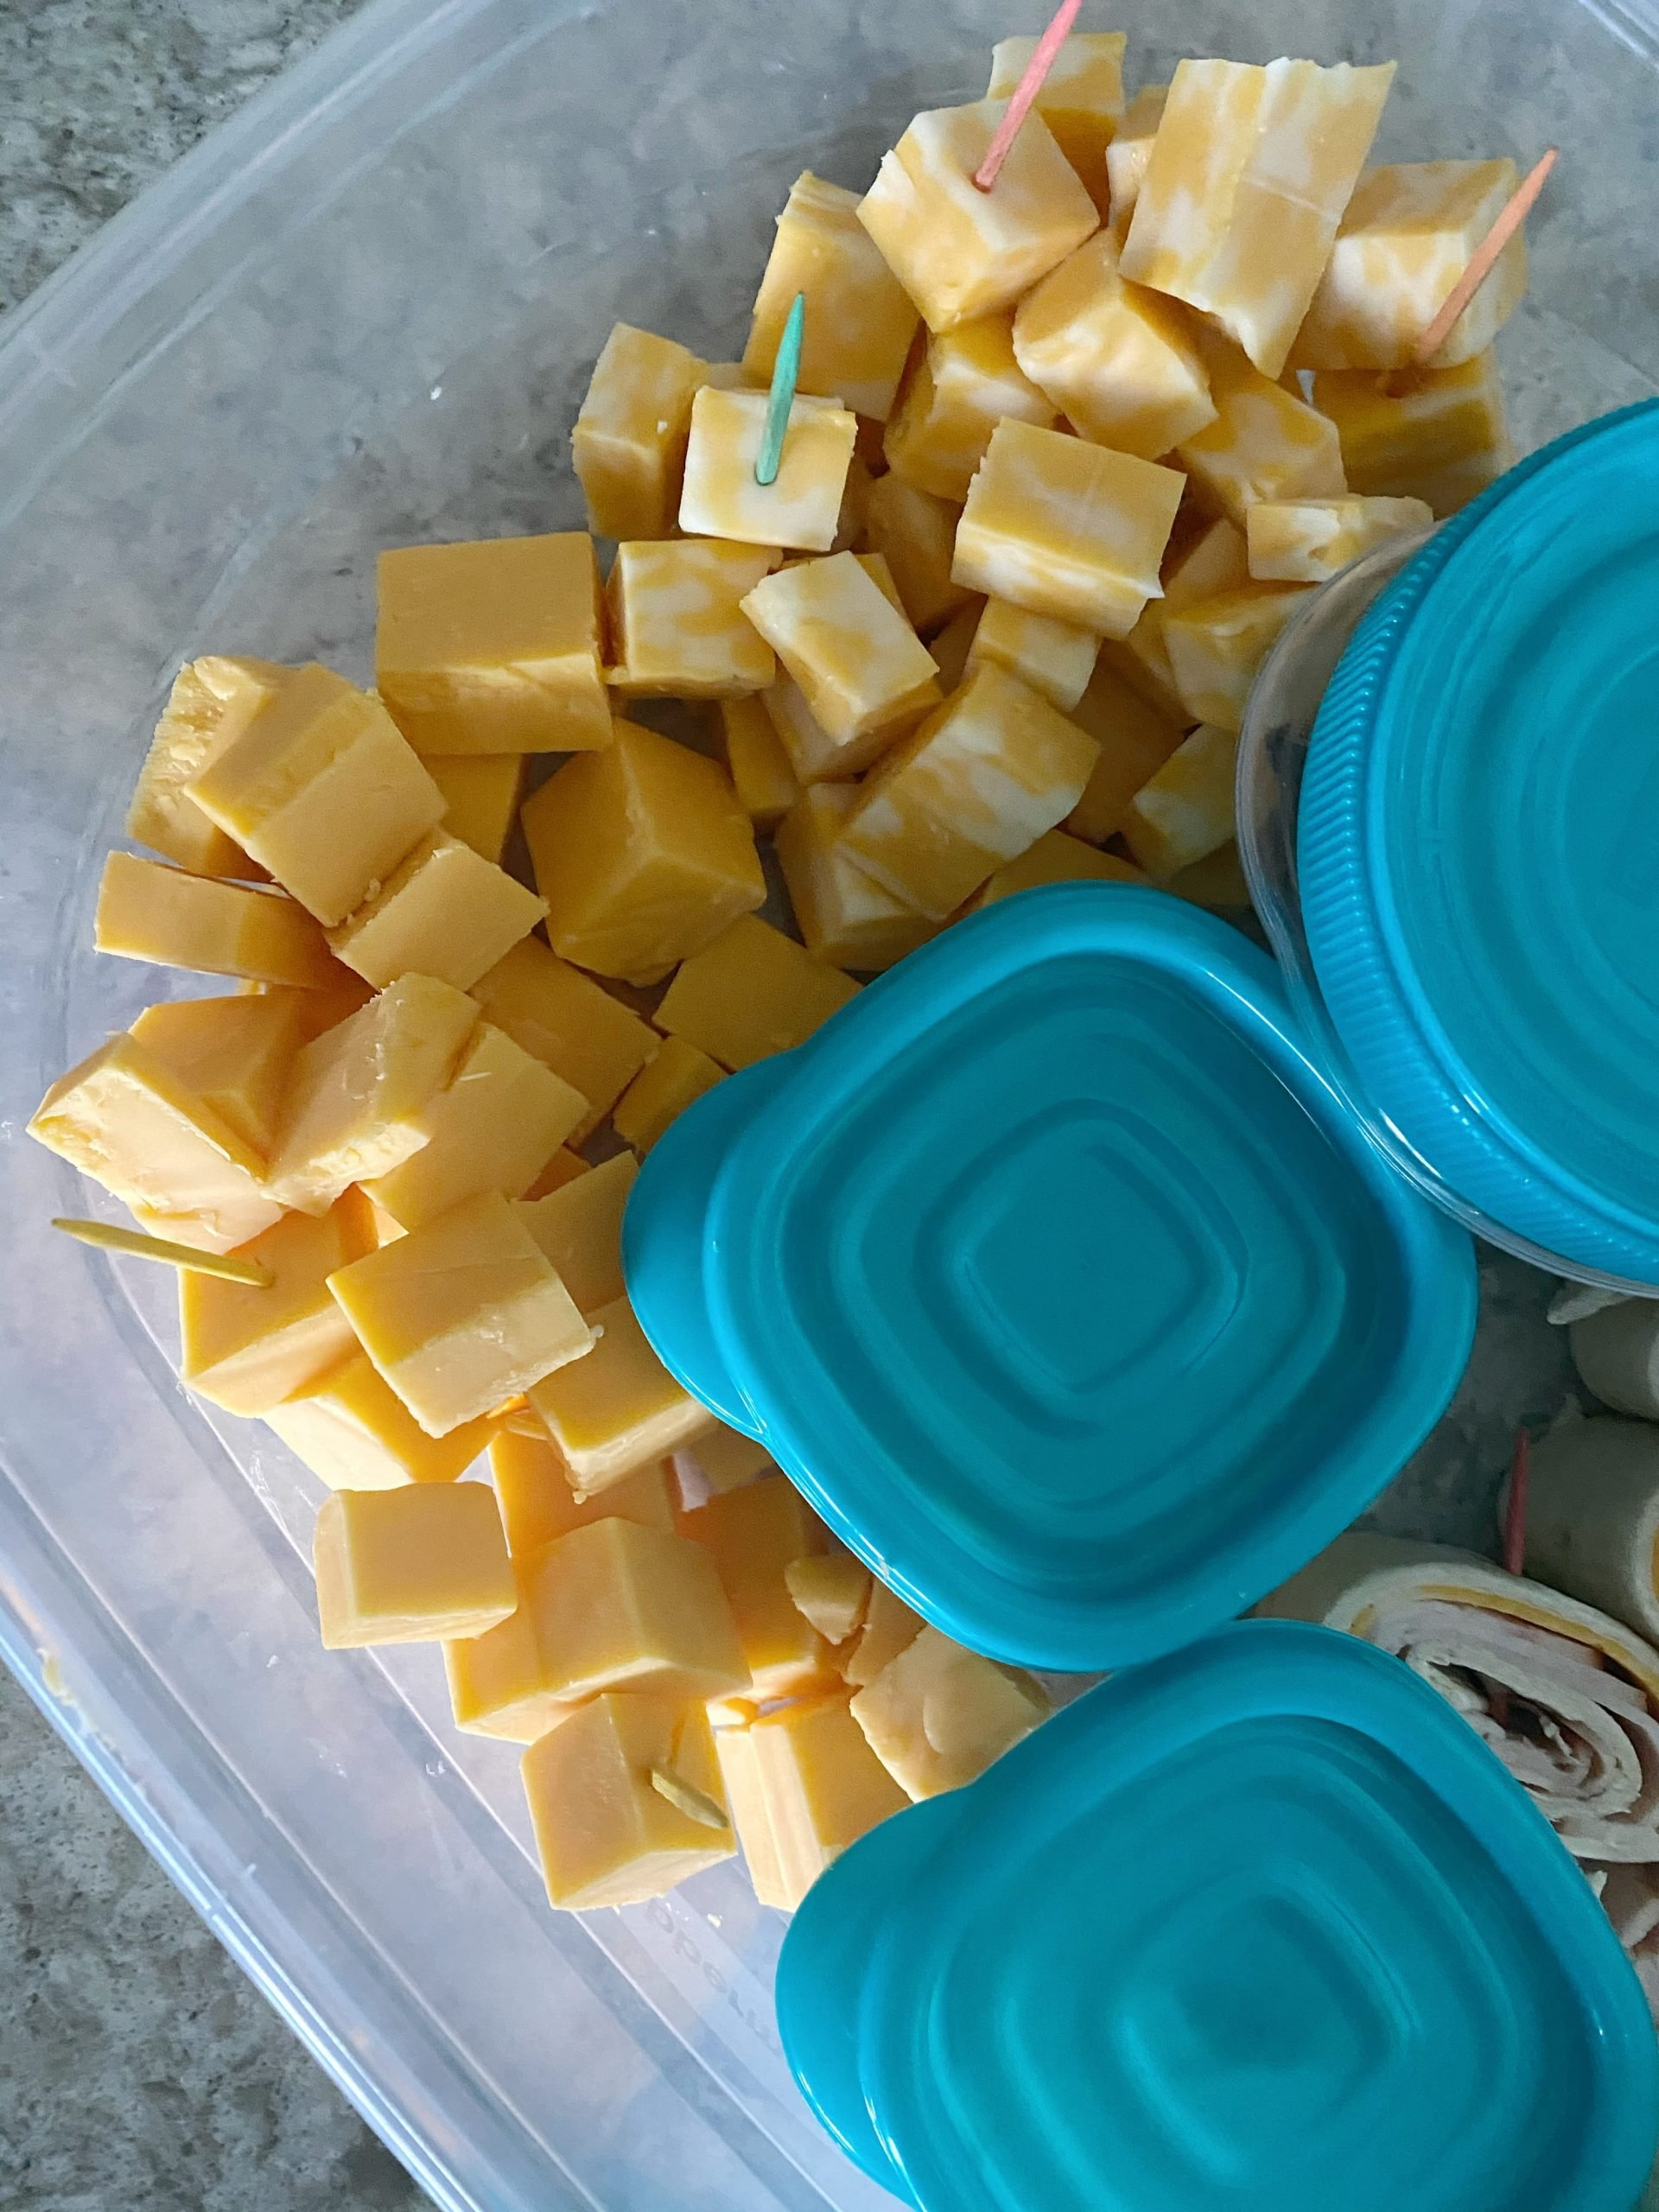 cubes of cheese in plastic container